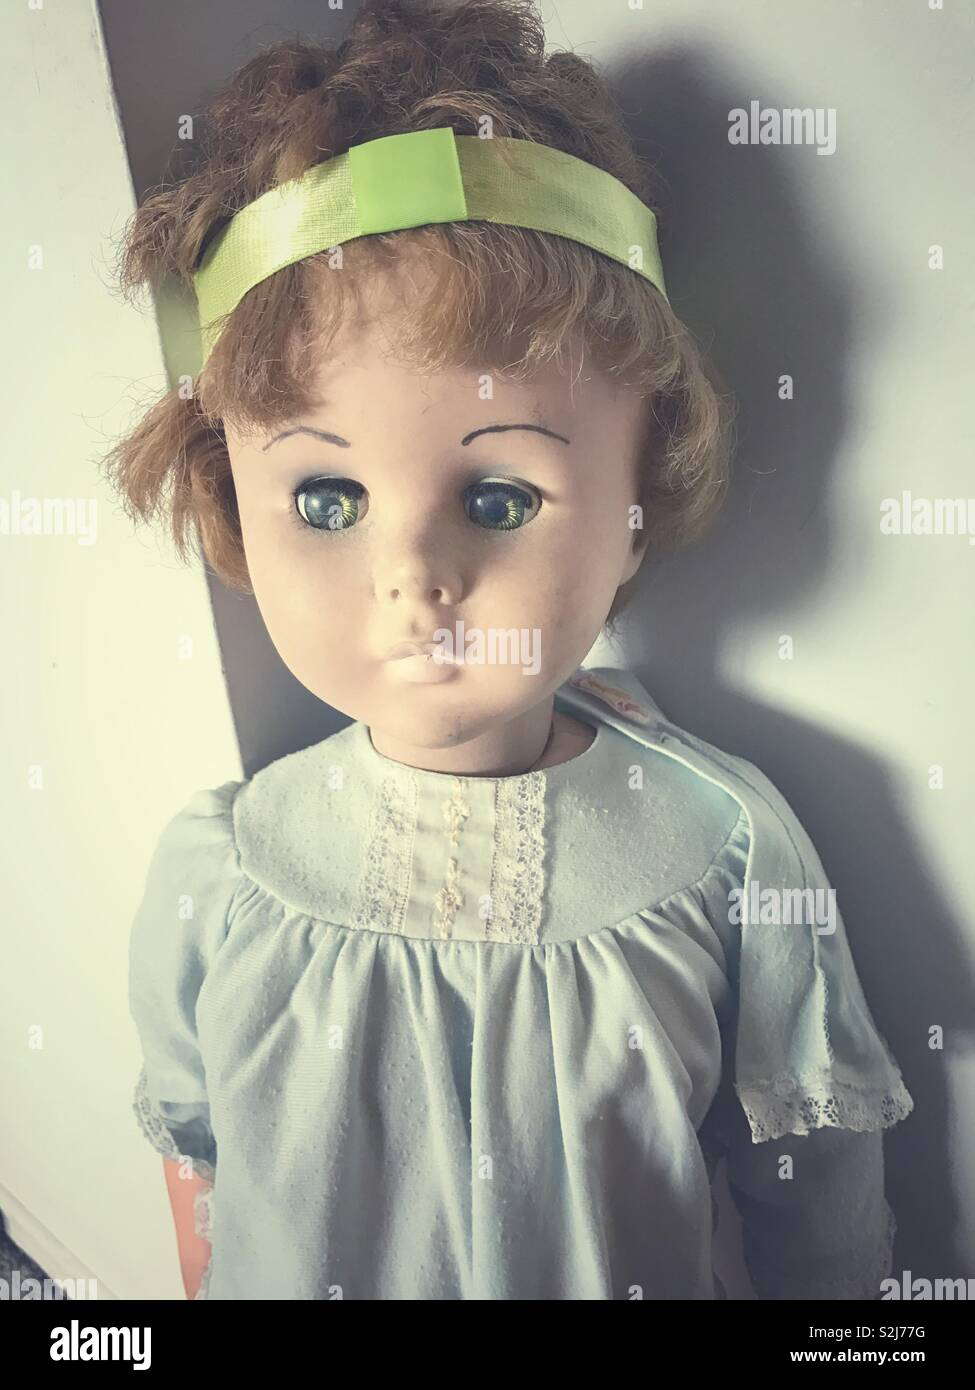 vintage children's doll from the 1960s or 1970s, worn out looking, with cut hair. - Stock Image